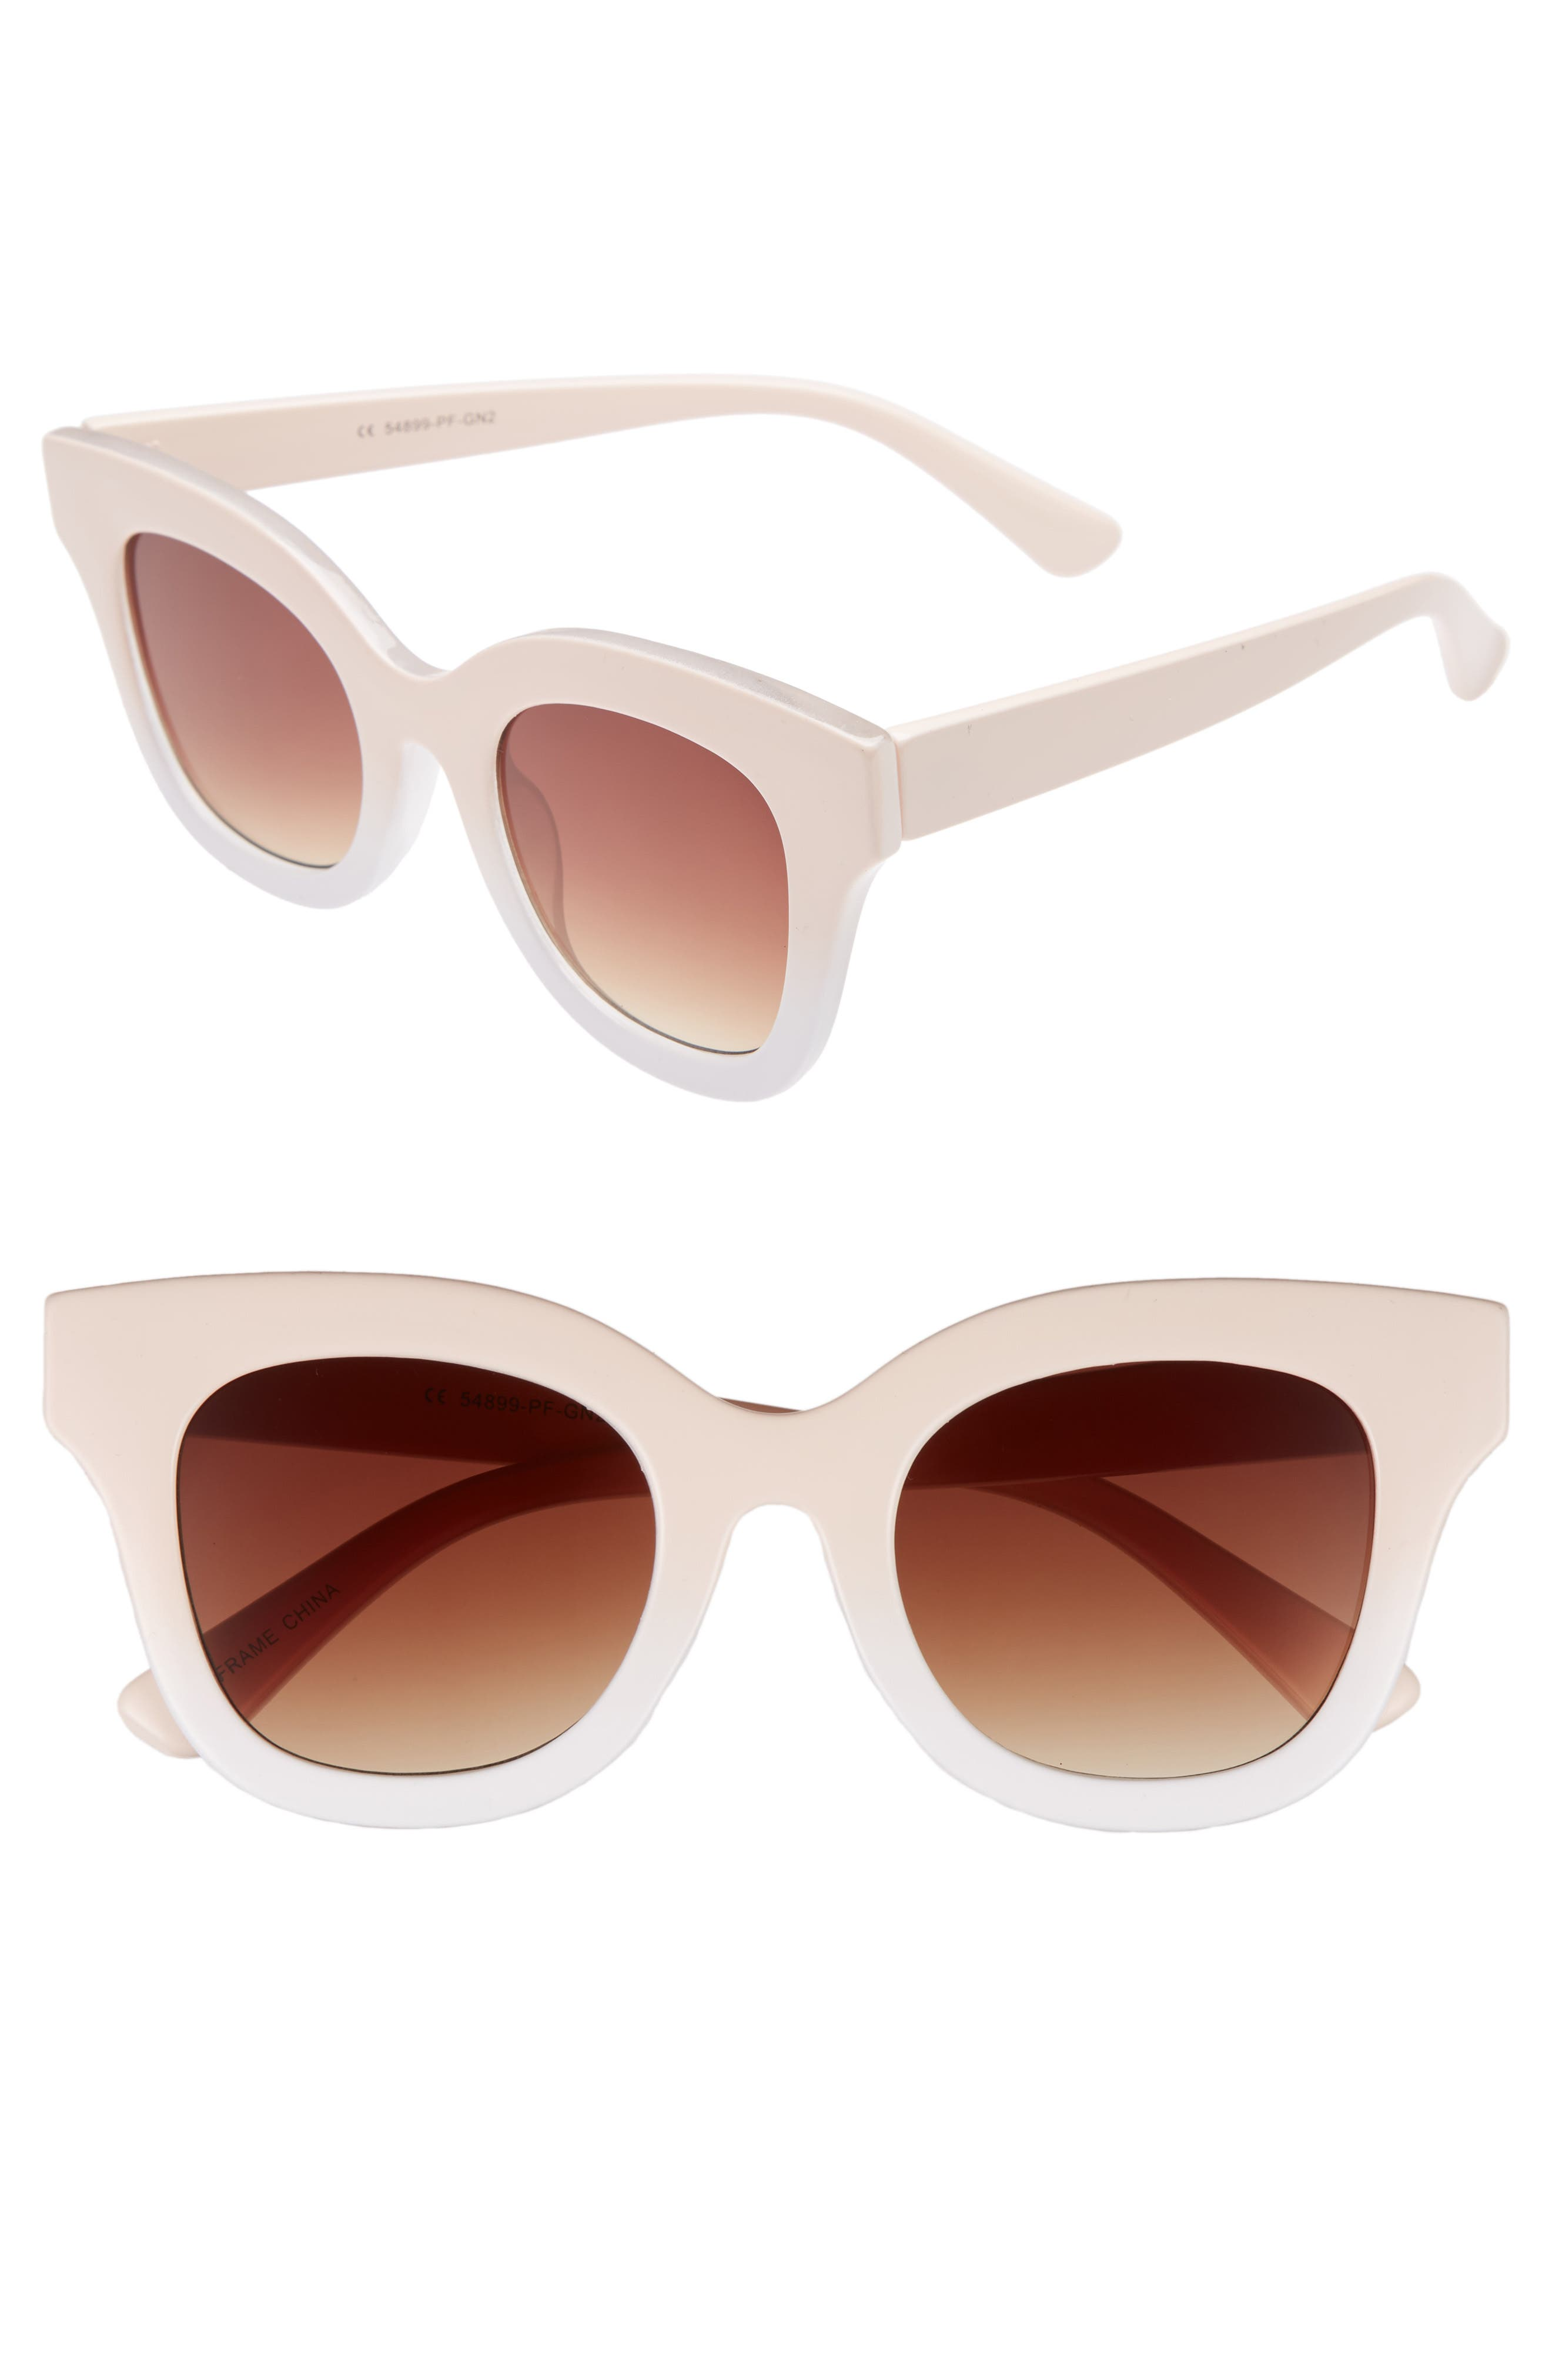 50mm Ombré Square Sunglasses,                         Main,                         color, 650